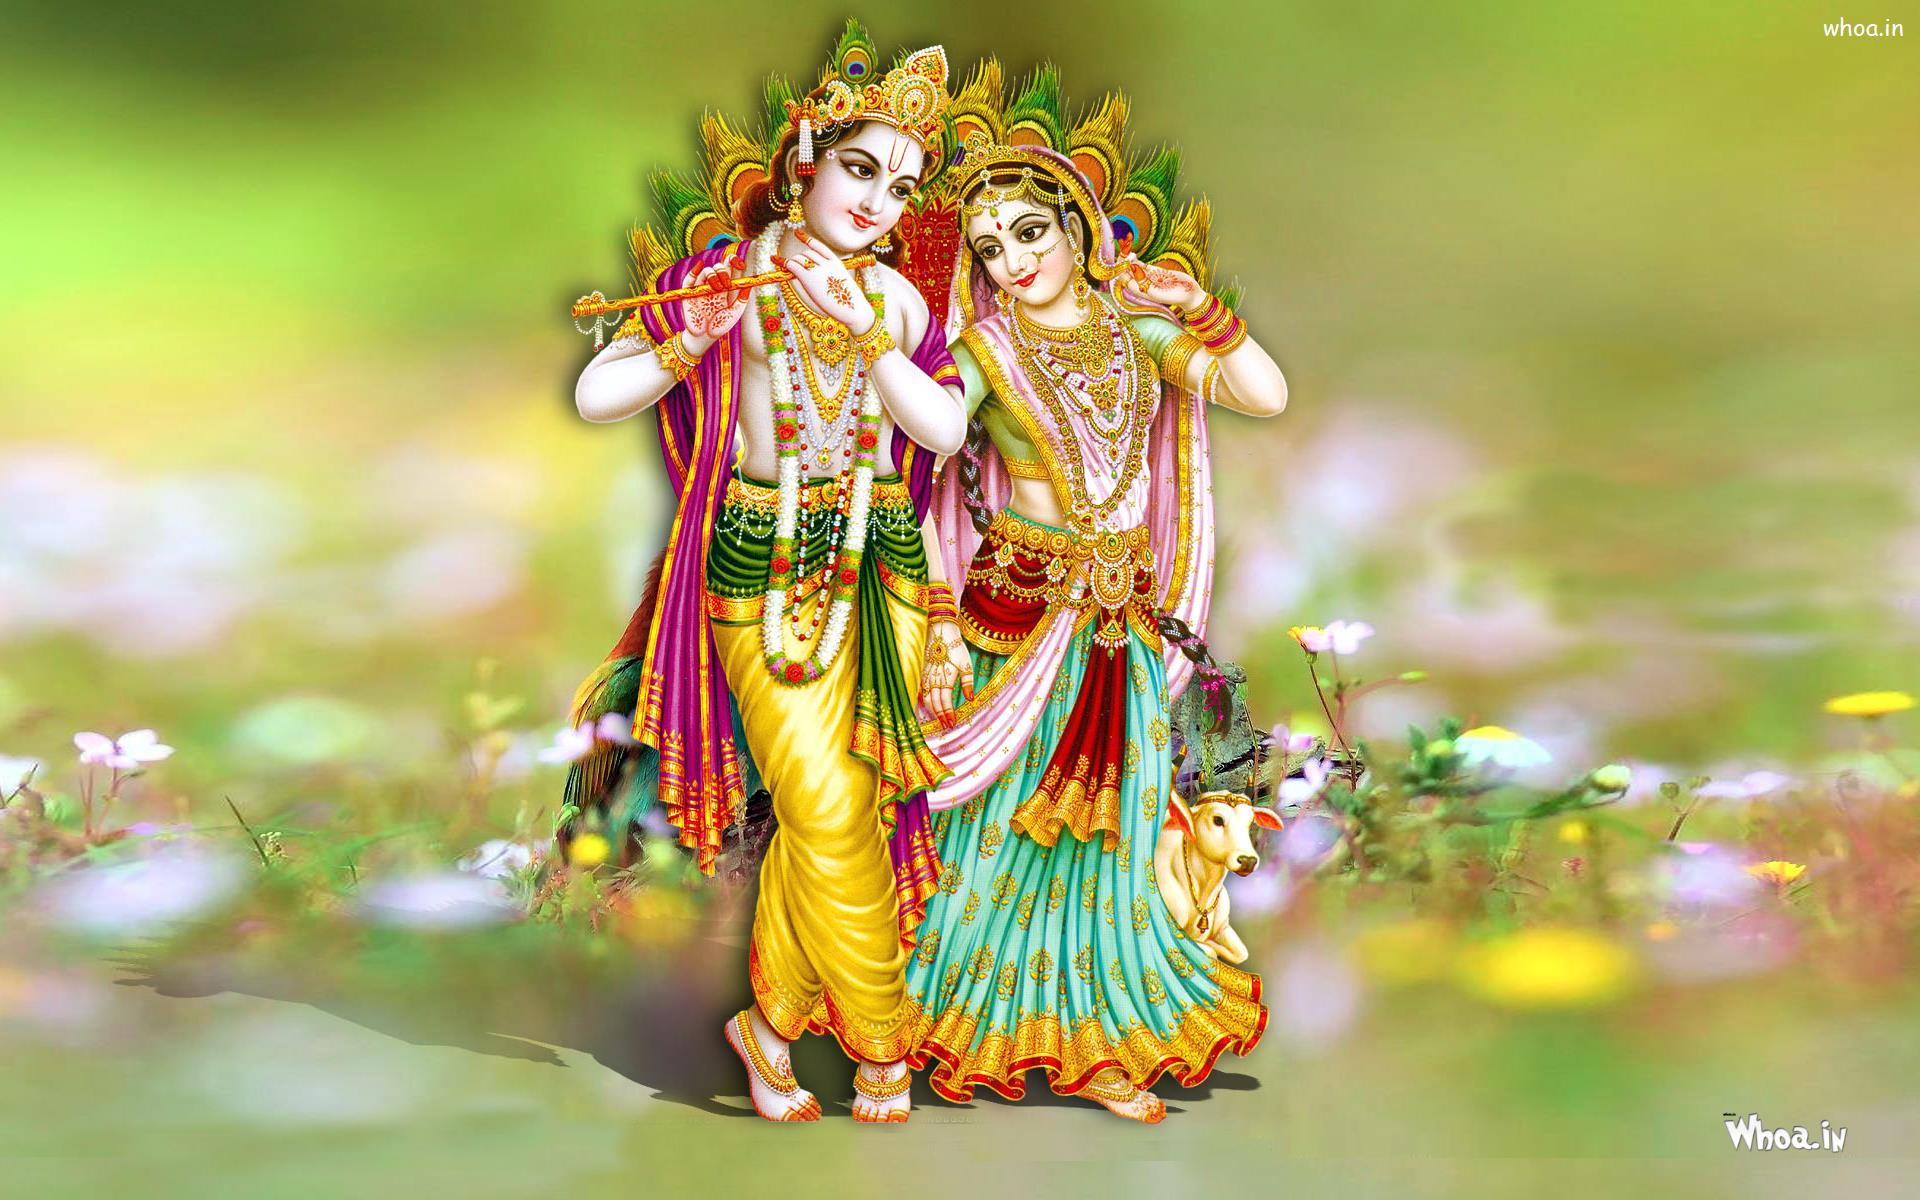 Hd wallpaper lord krishna - Download